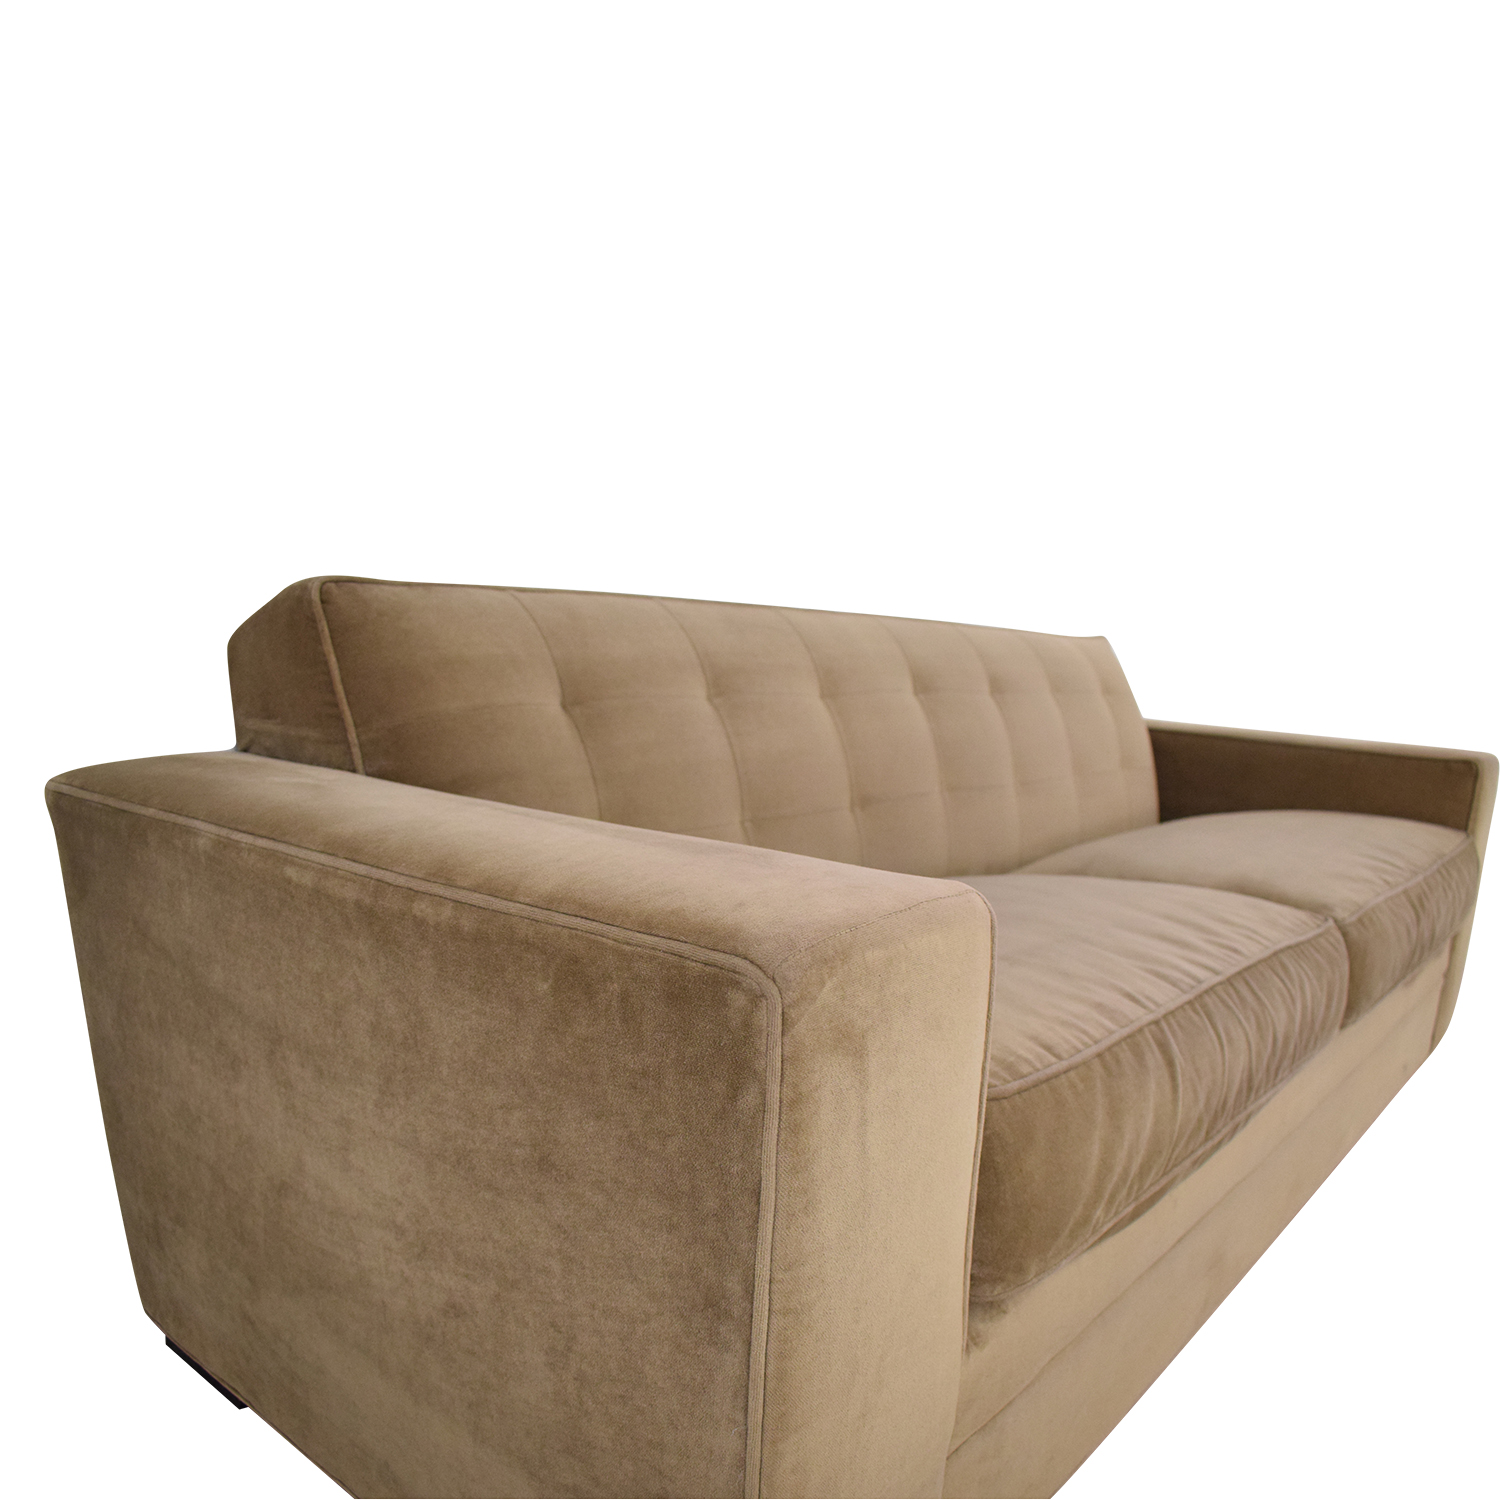 buy Mitchell Gold + Bob Williams Mitchell Gold + Bob Williams Two Cushion Sofa online